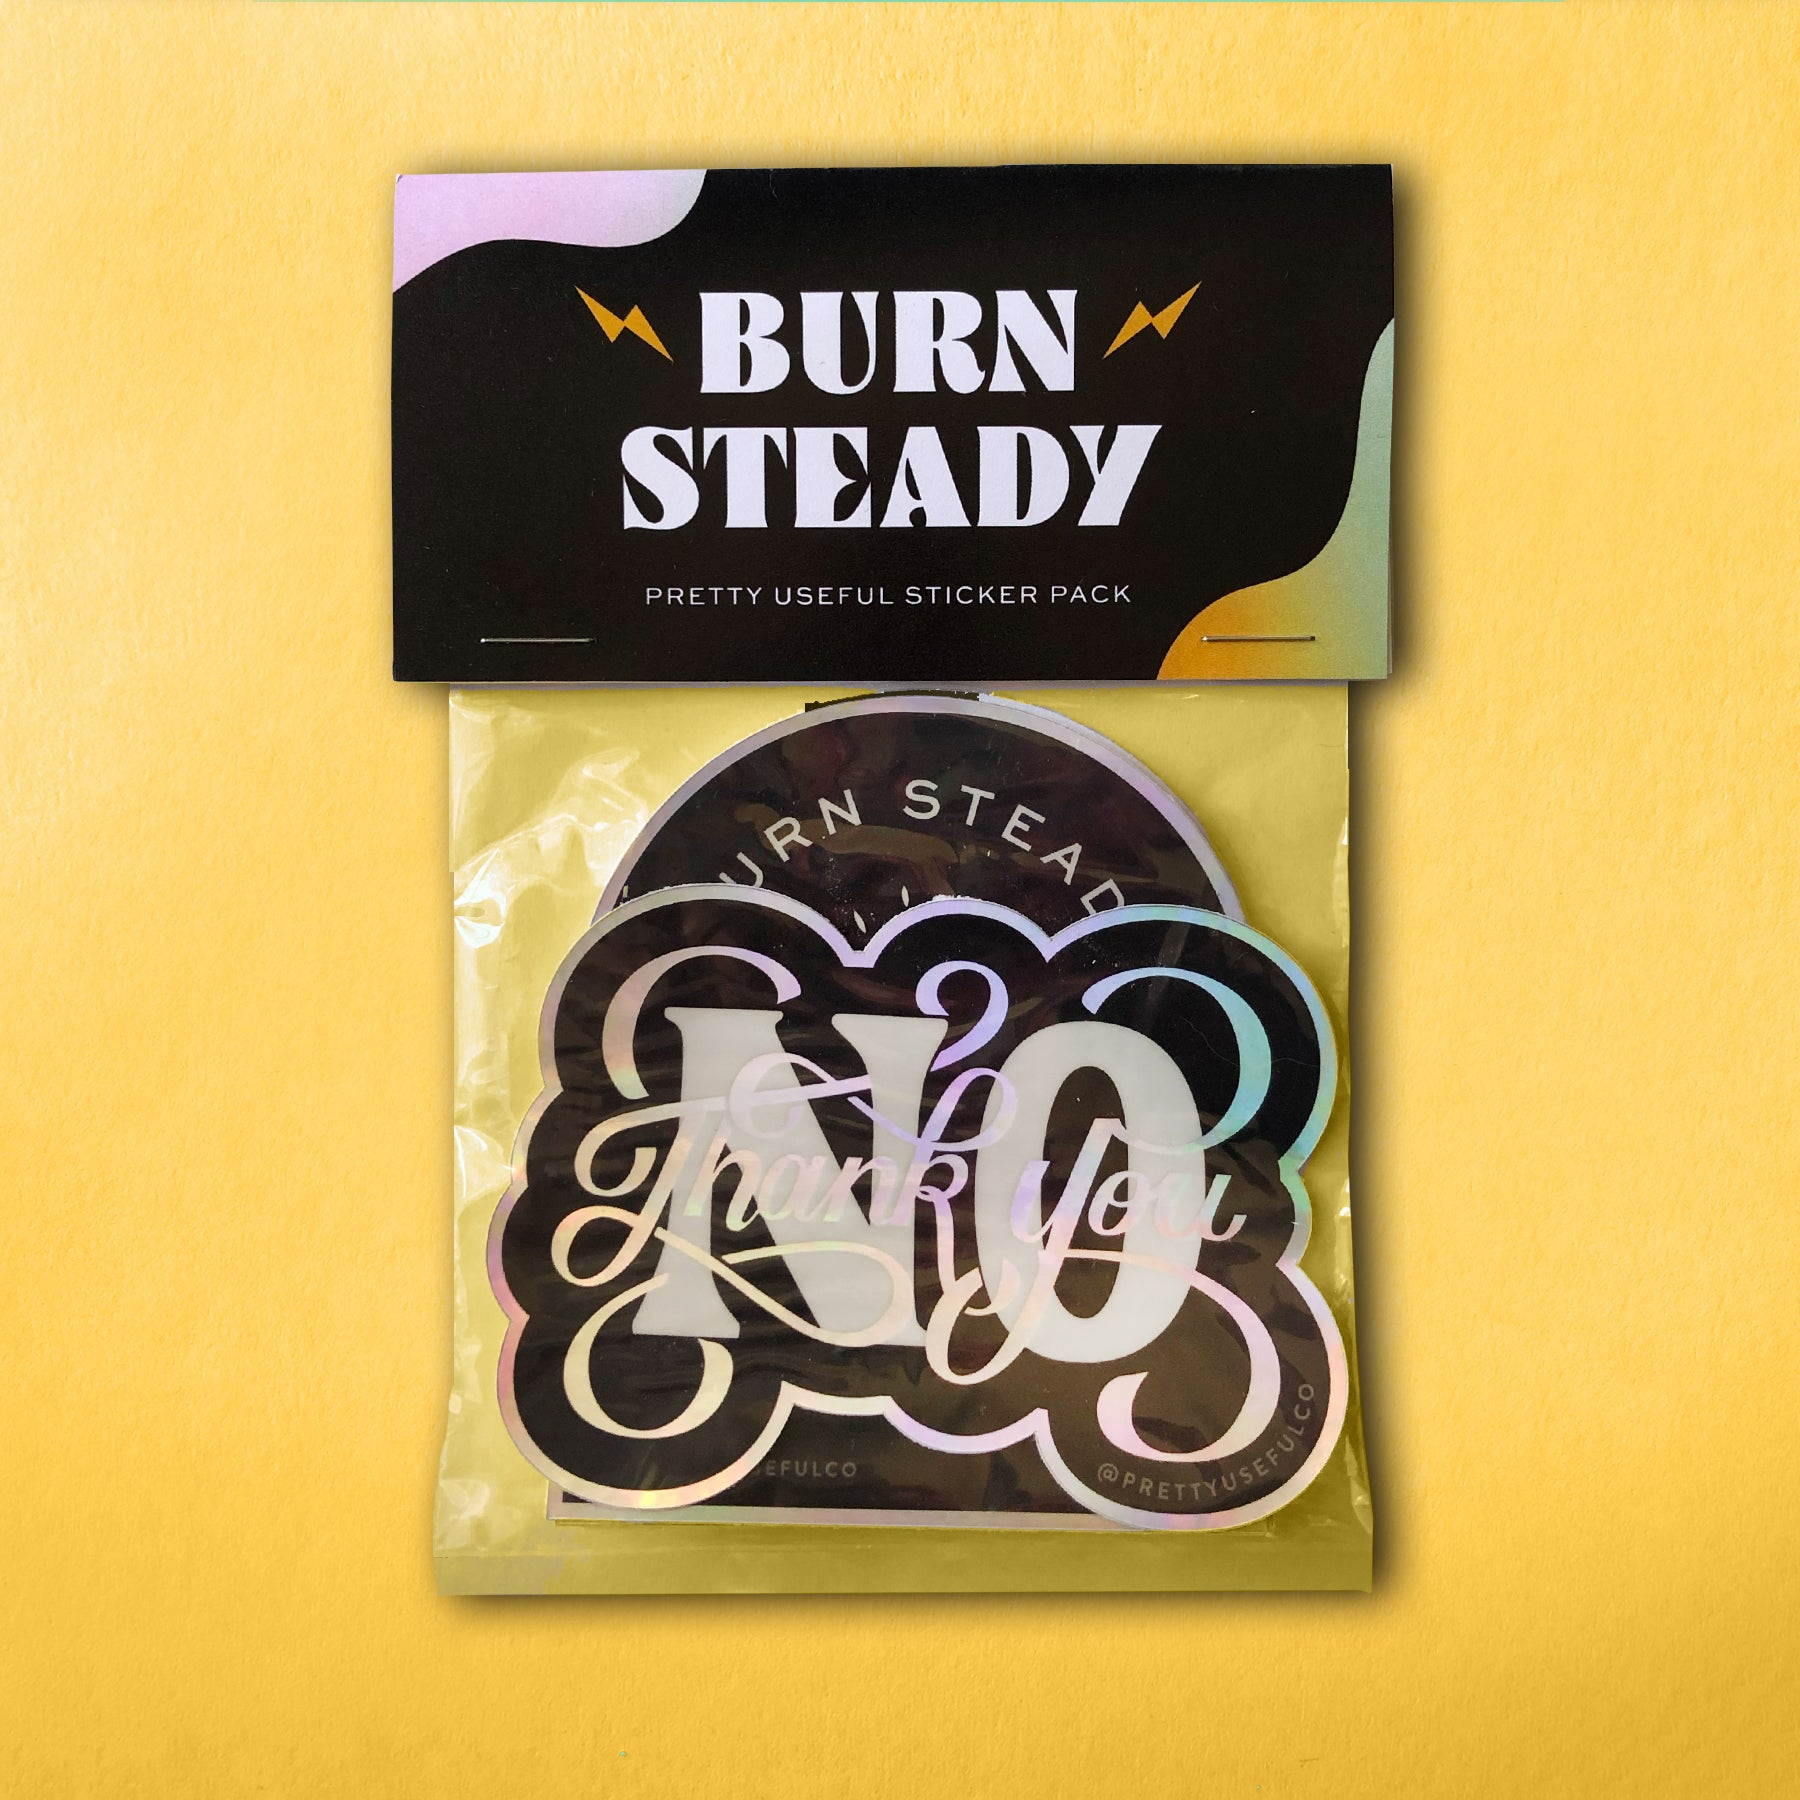 Burn Steady Sticker Pack